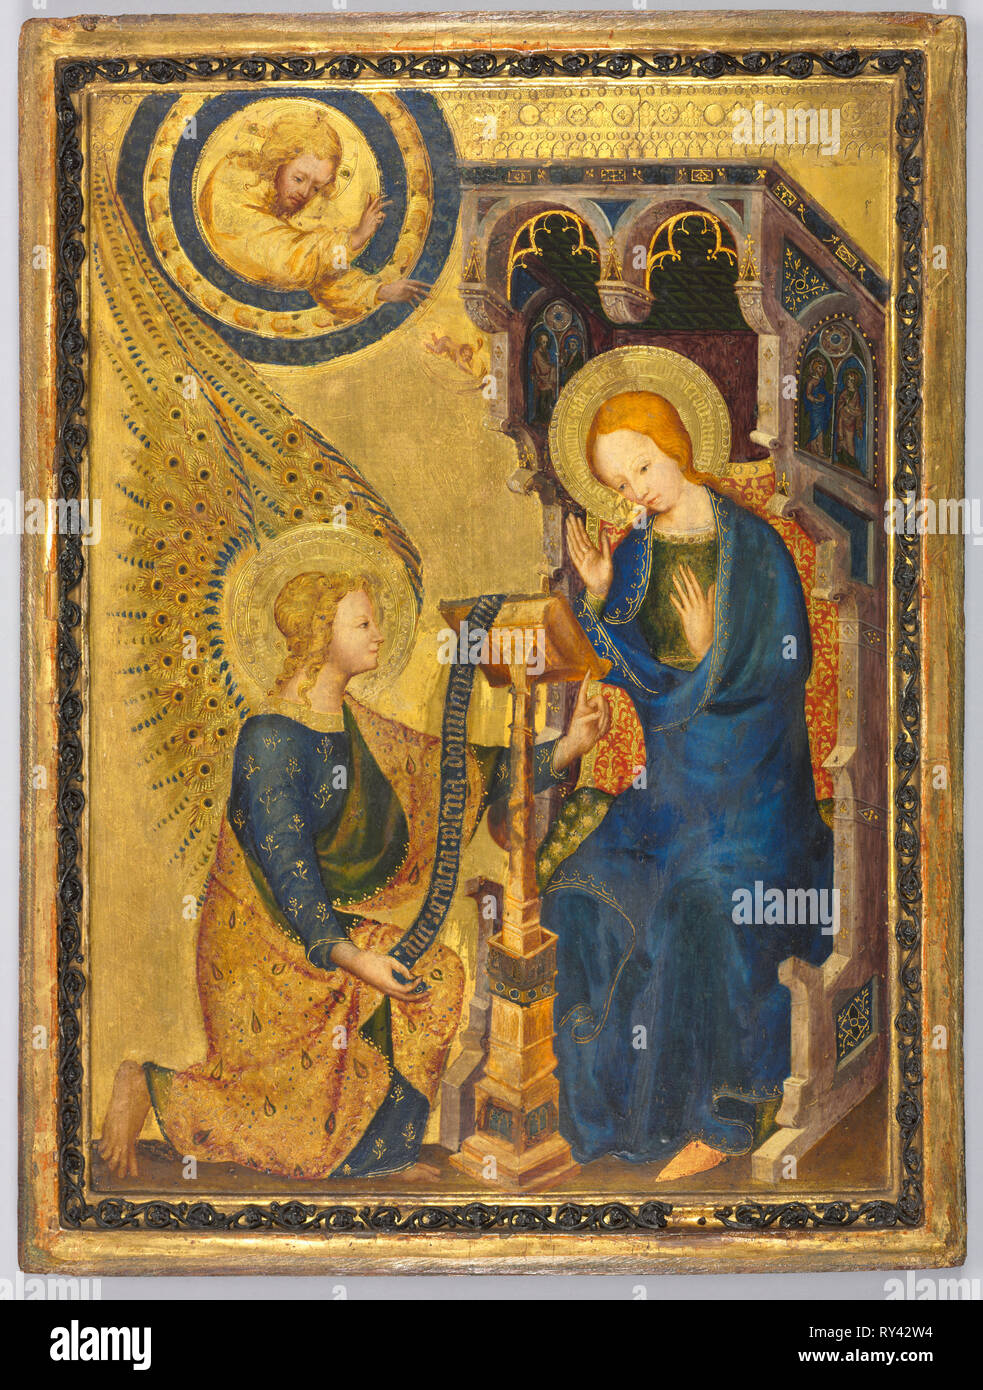 The Annunciation, 1380s. Netherlands, or possibly France, 14th century. Tempera and oil with gold on wood; framed: 40.3 x 31.4 x 4.8 cm (15 7/8 x 12 3/8 x 1 7/8 in - Stock Image